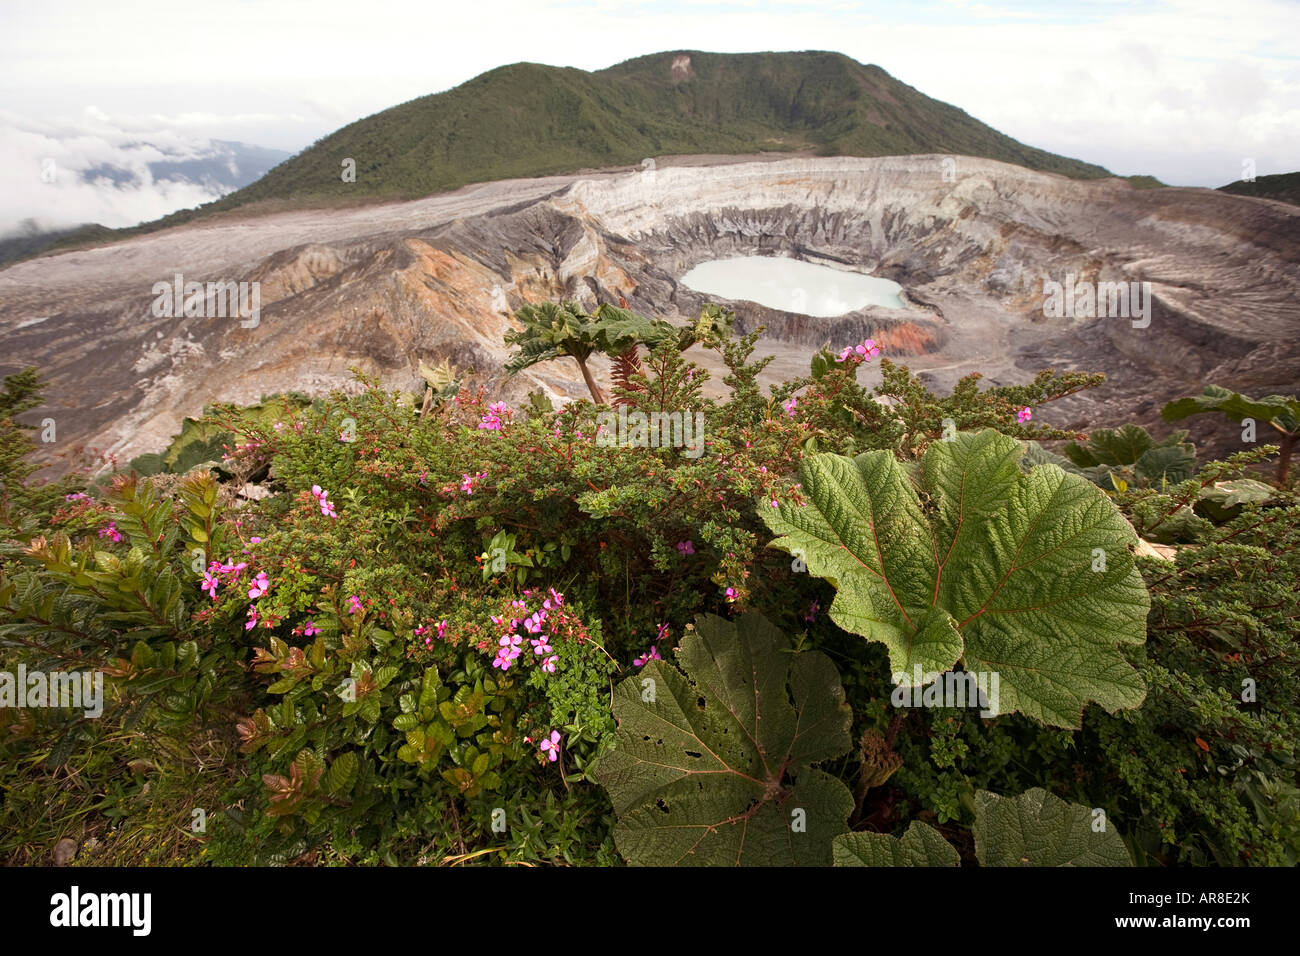 Costa Rica Poas Volcano National Park the main crater and hot lake laguna caliente - Stock Image